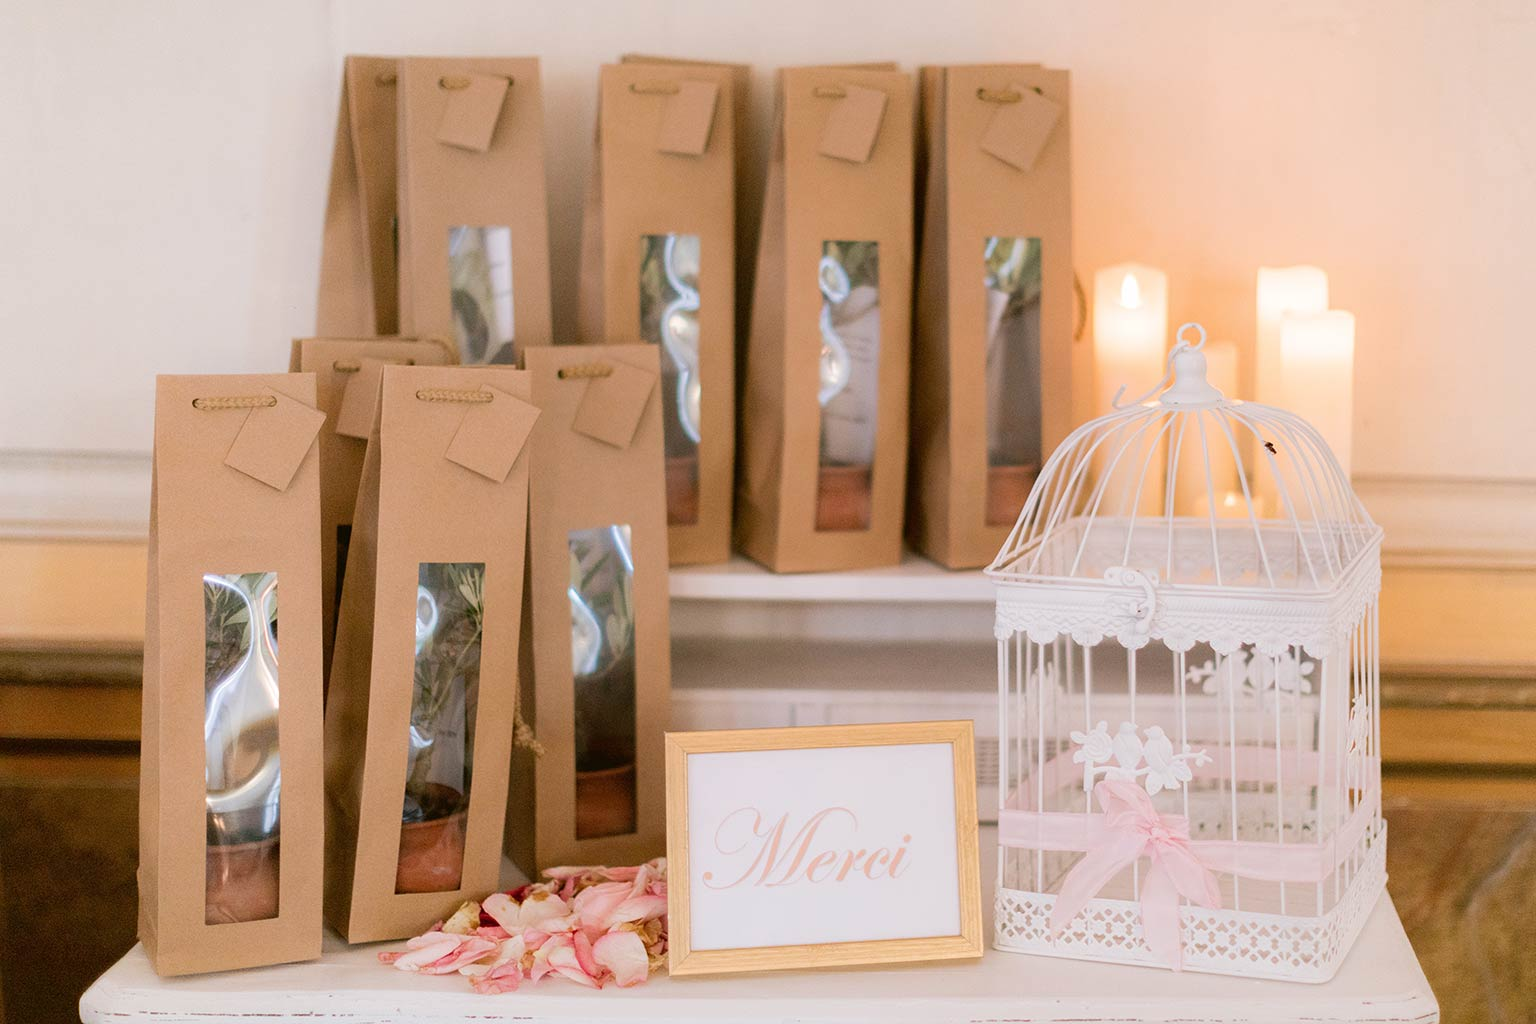 Small olive trees-original guest favors- Destination wedding between the French Riviera and Provence